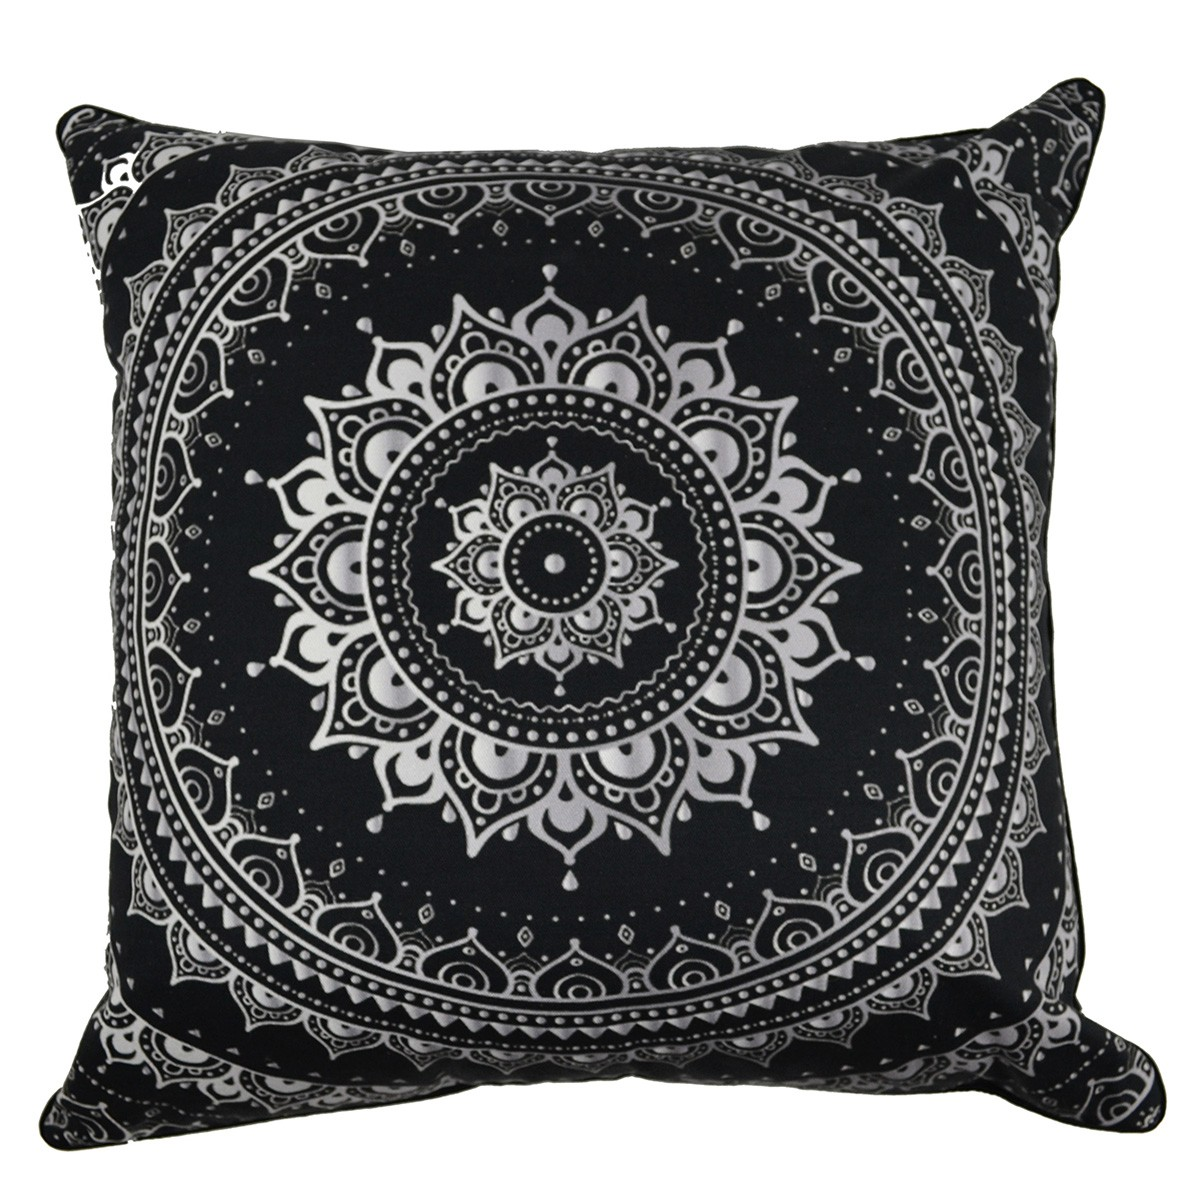 Mandala Wheel I Printed Cotton Scatter Cushion